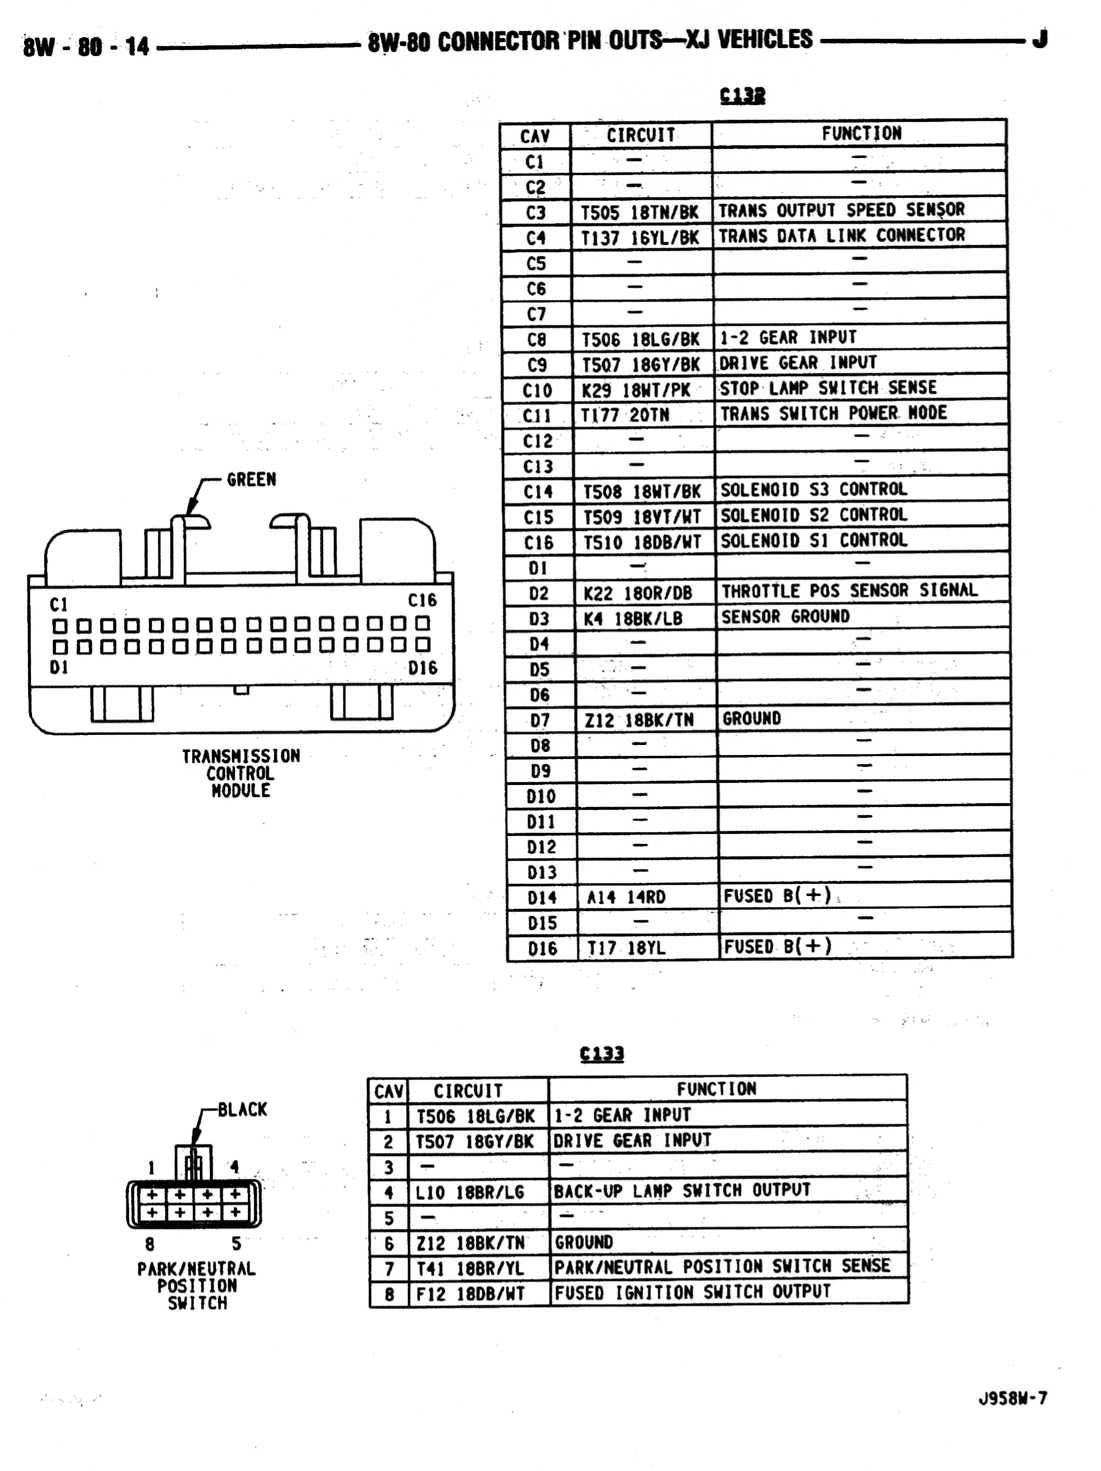 hight resolution of 2000 jeep xj aw4 wiring blog wiring diagram aw4 wiring diagram 2000 jeep xj aw4 wiring